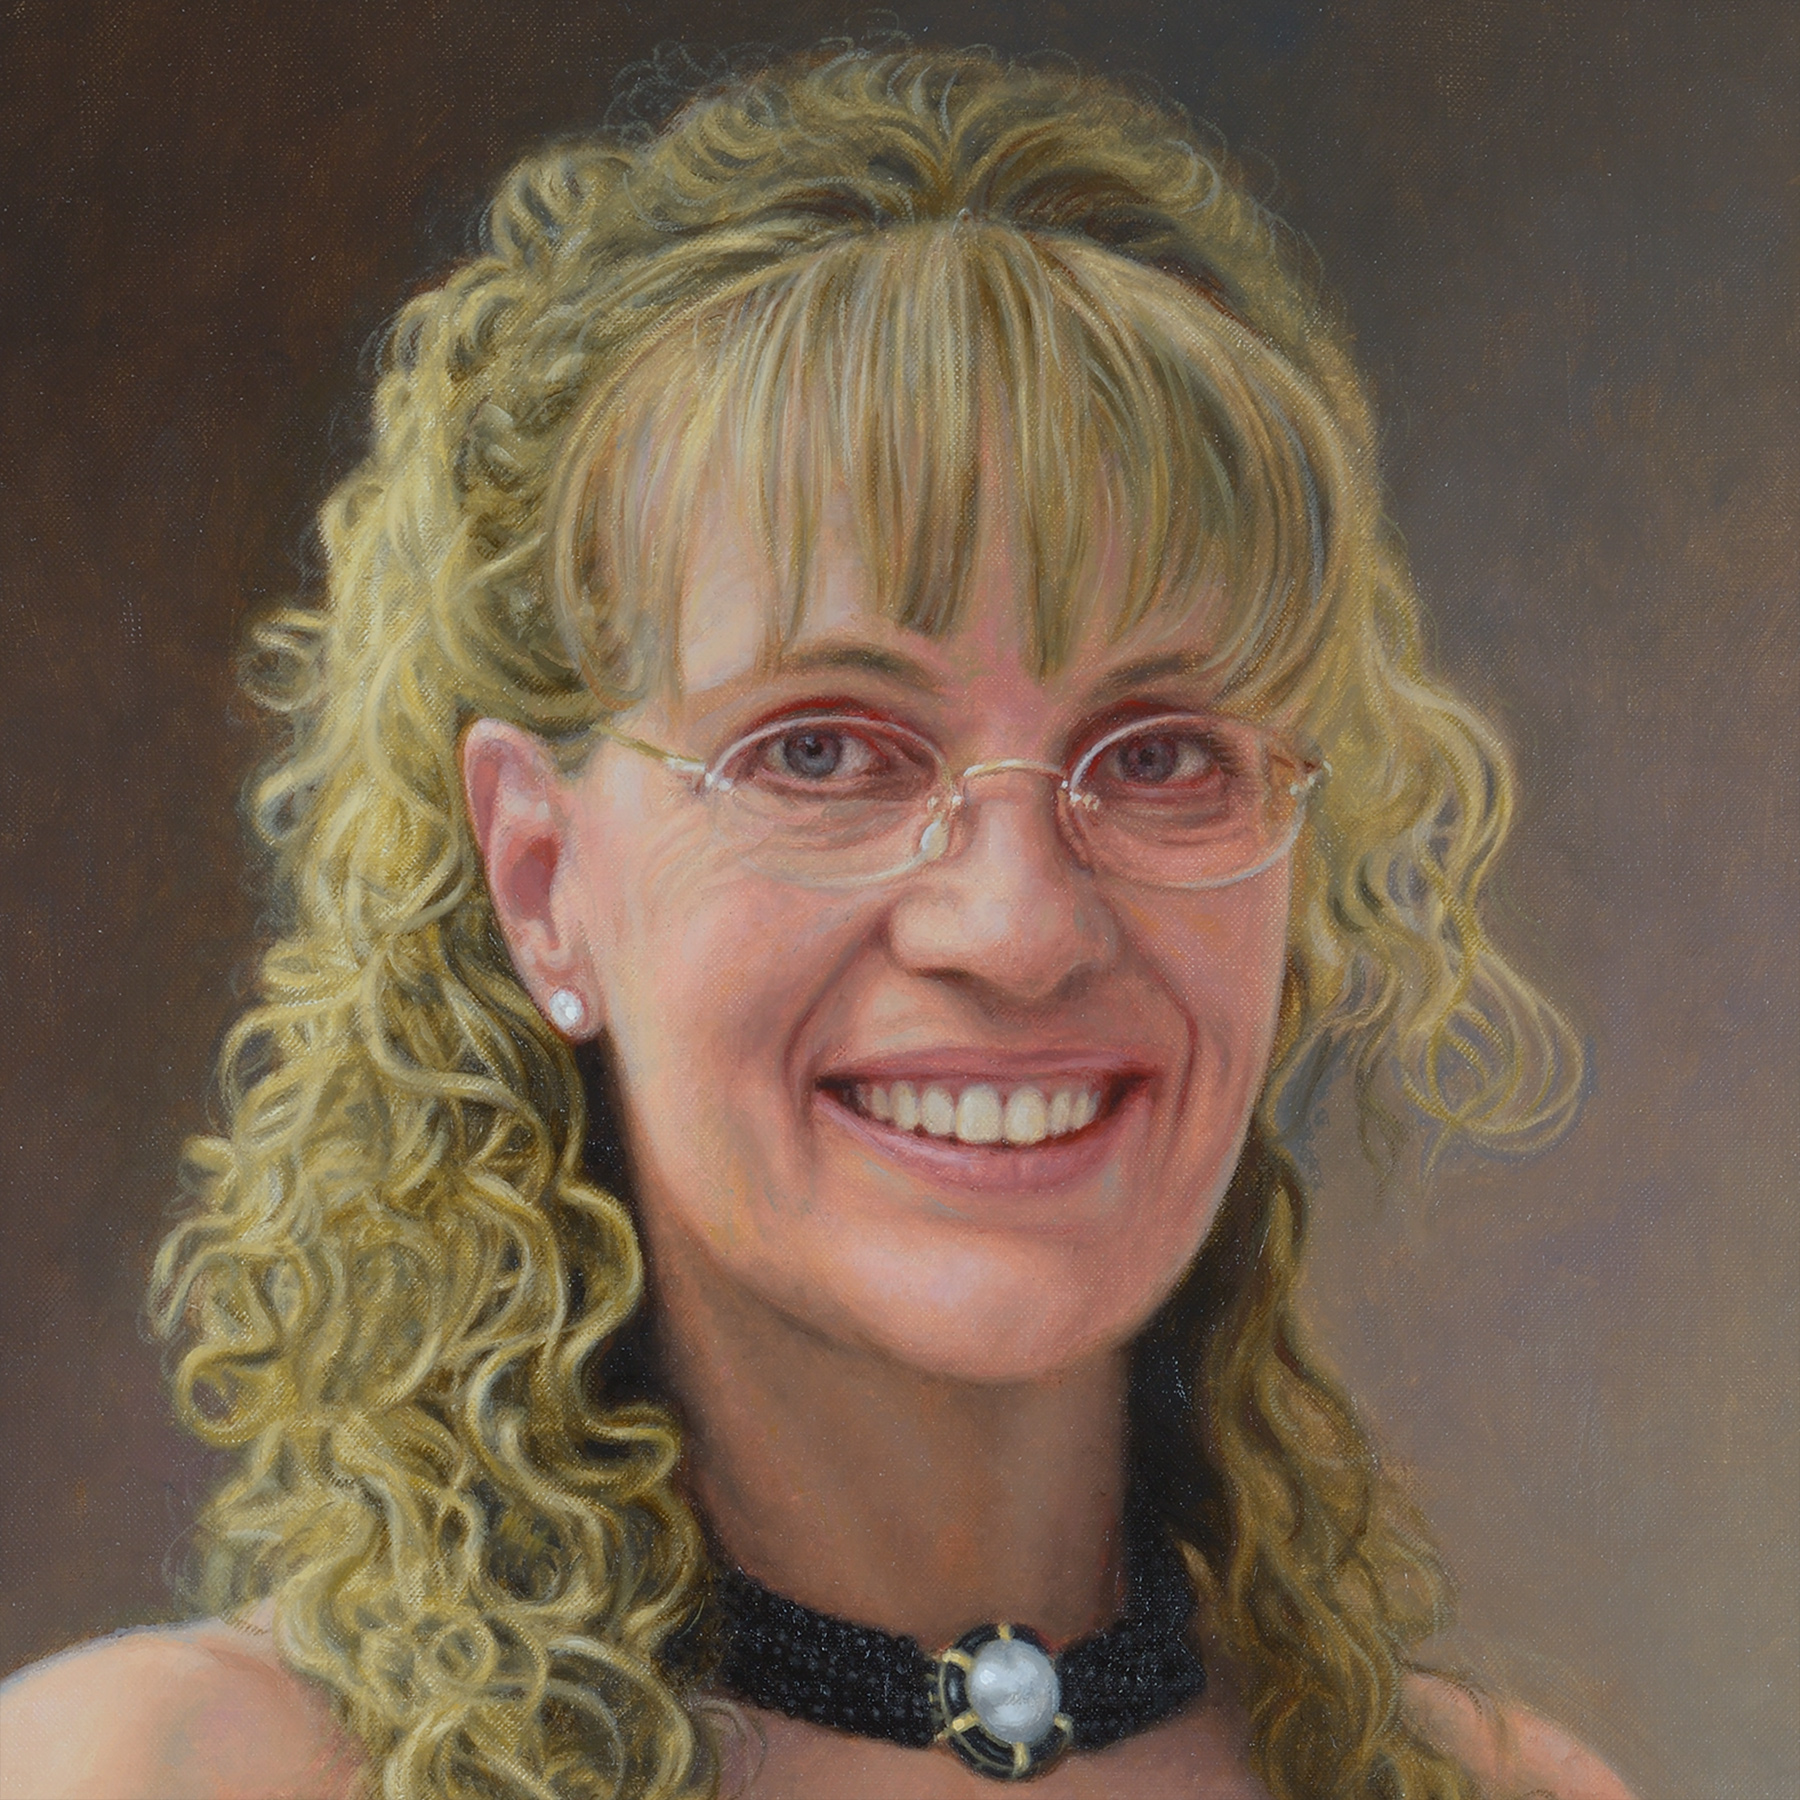 Shelly Kaye face detail for Posthumous Portrait Commisioned Art